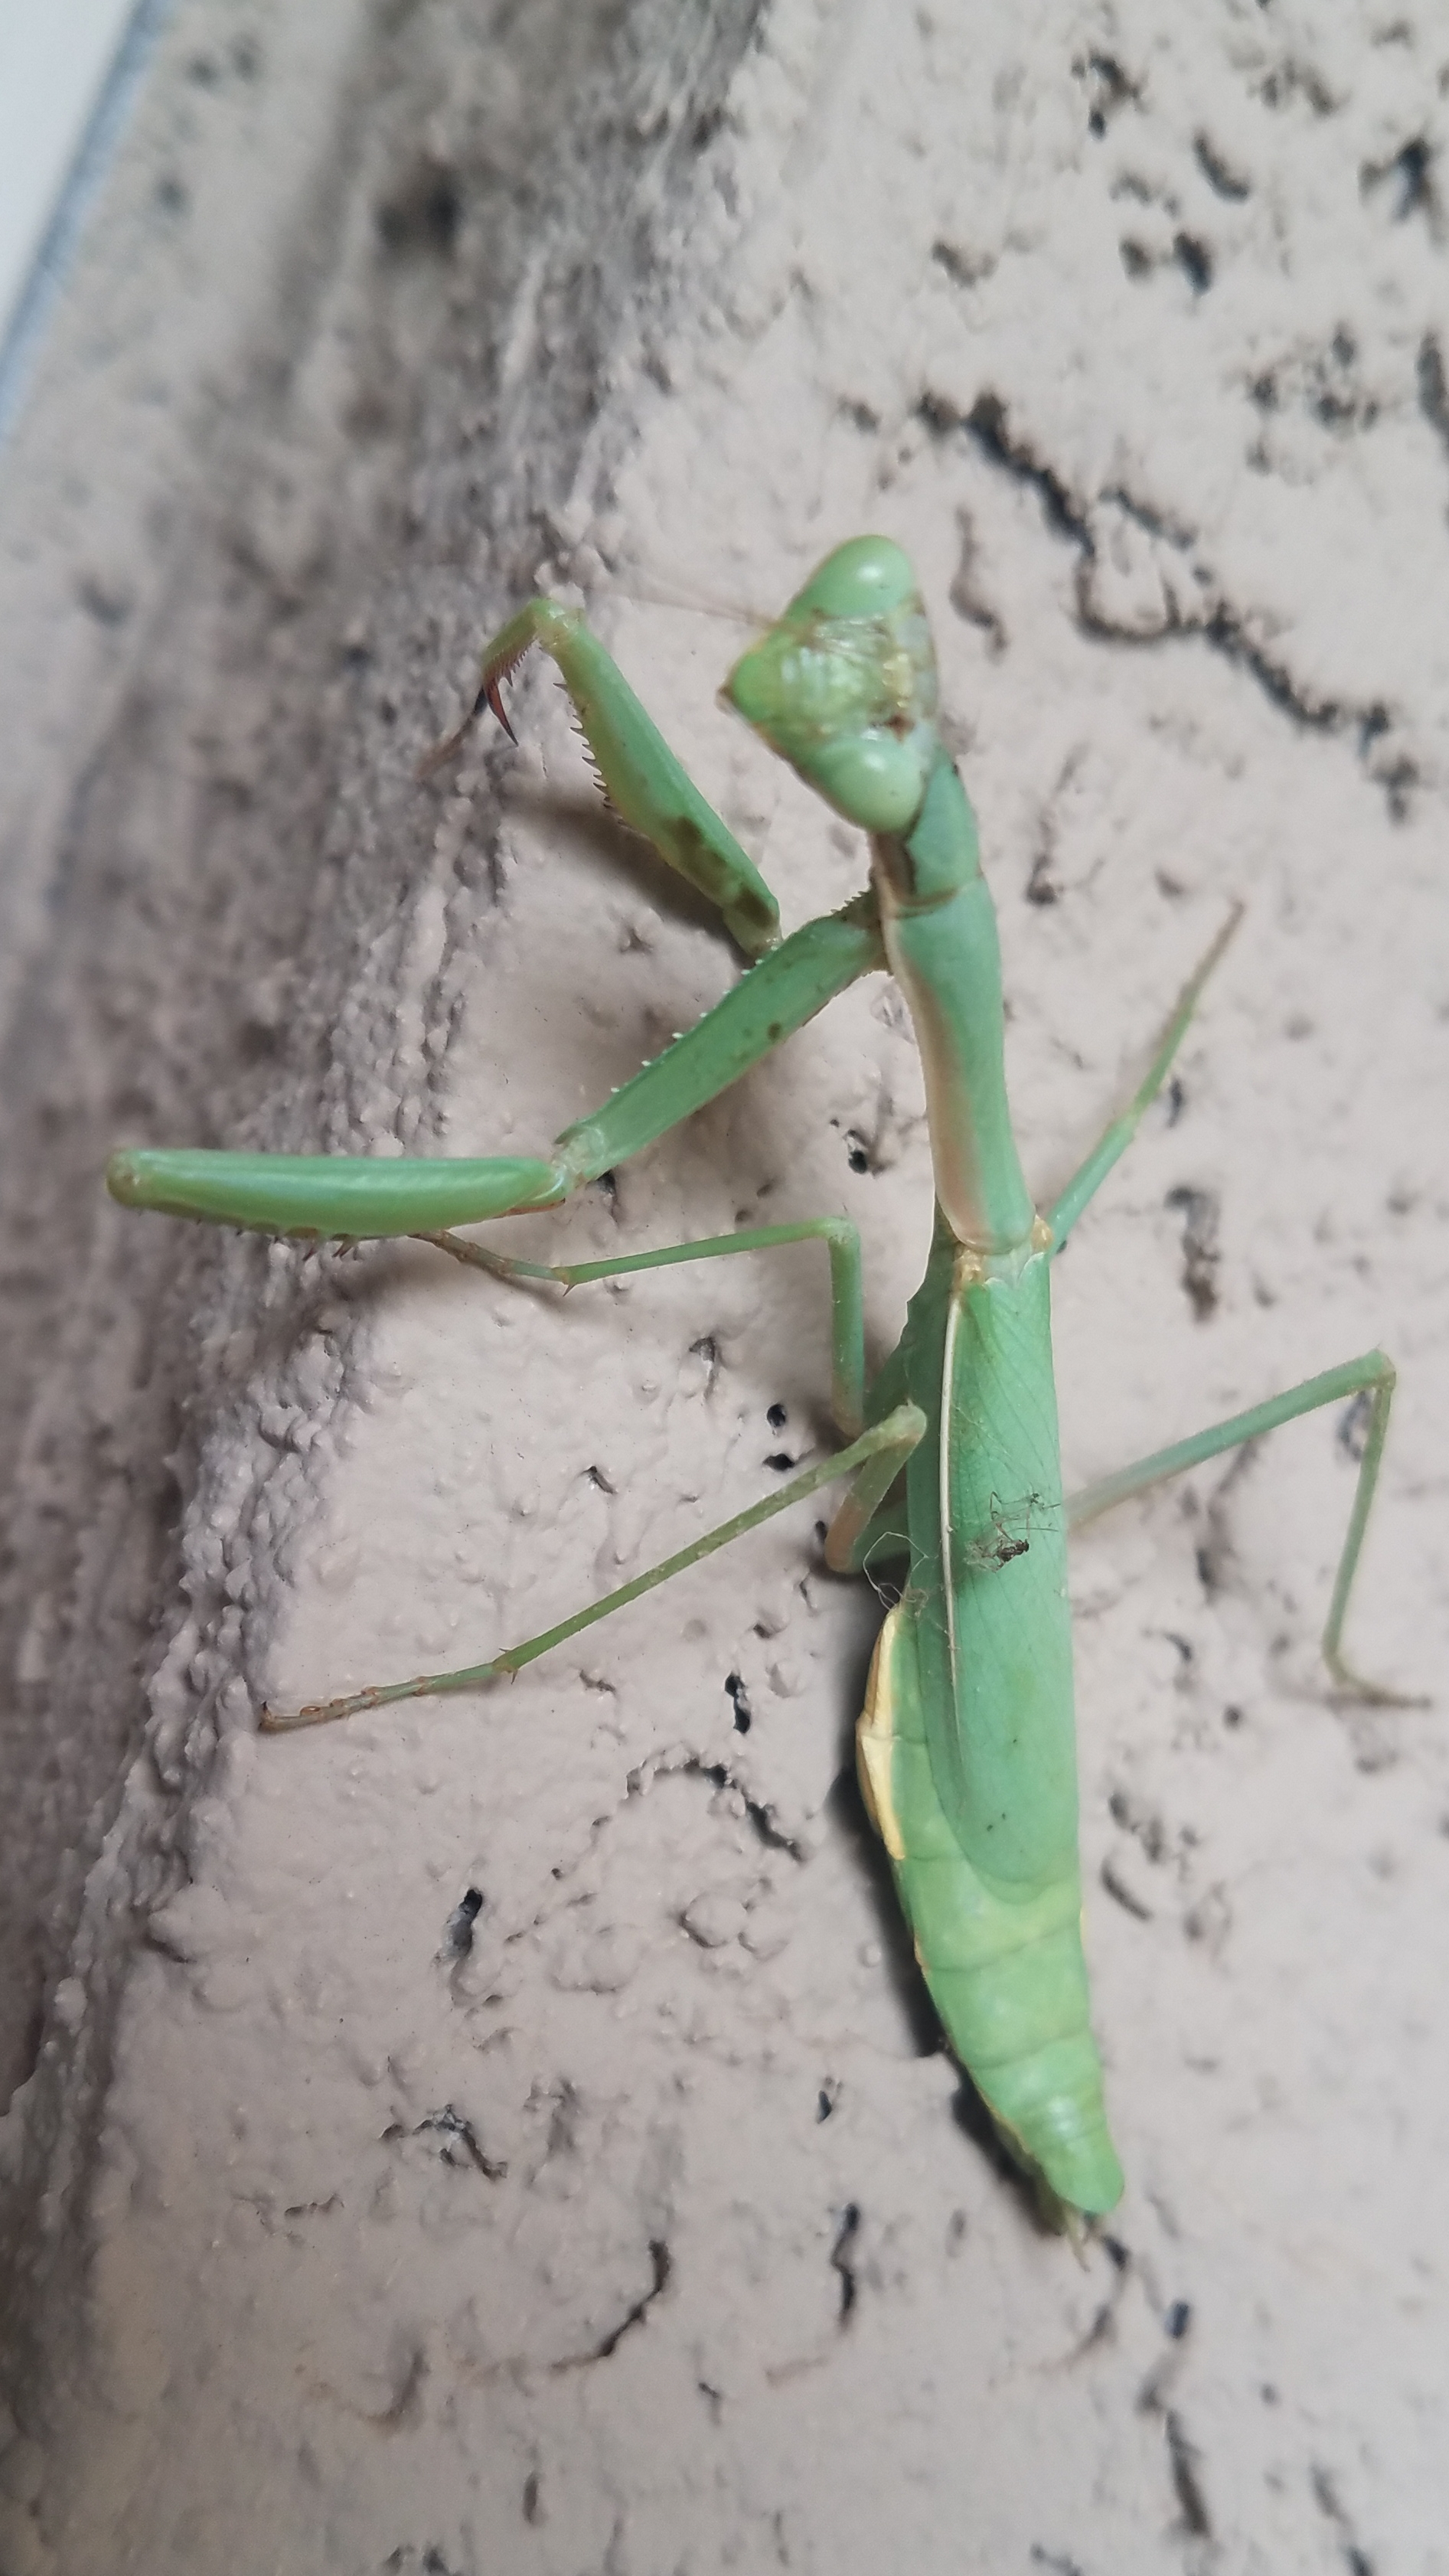 The Praying Mantis: These carnivores are insect-eating machines, capable of killing prey up to 3x its own size. They are always welcome in my yard.